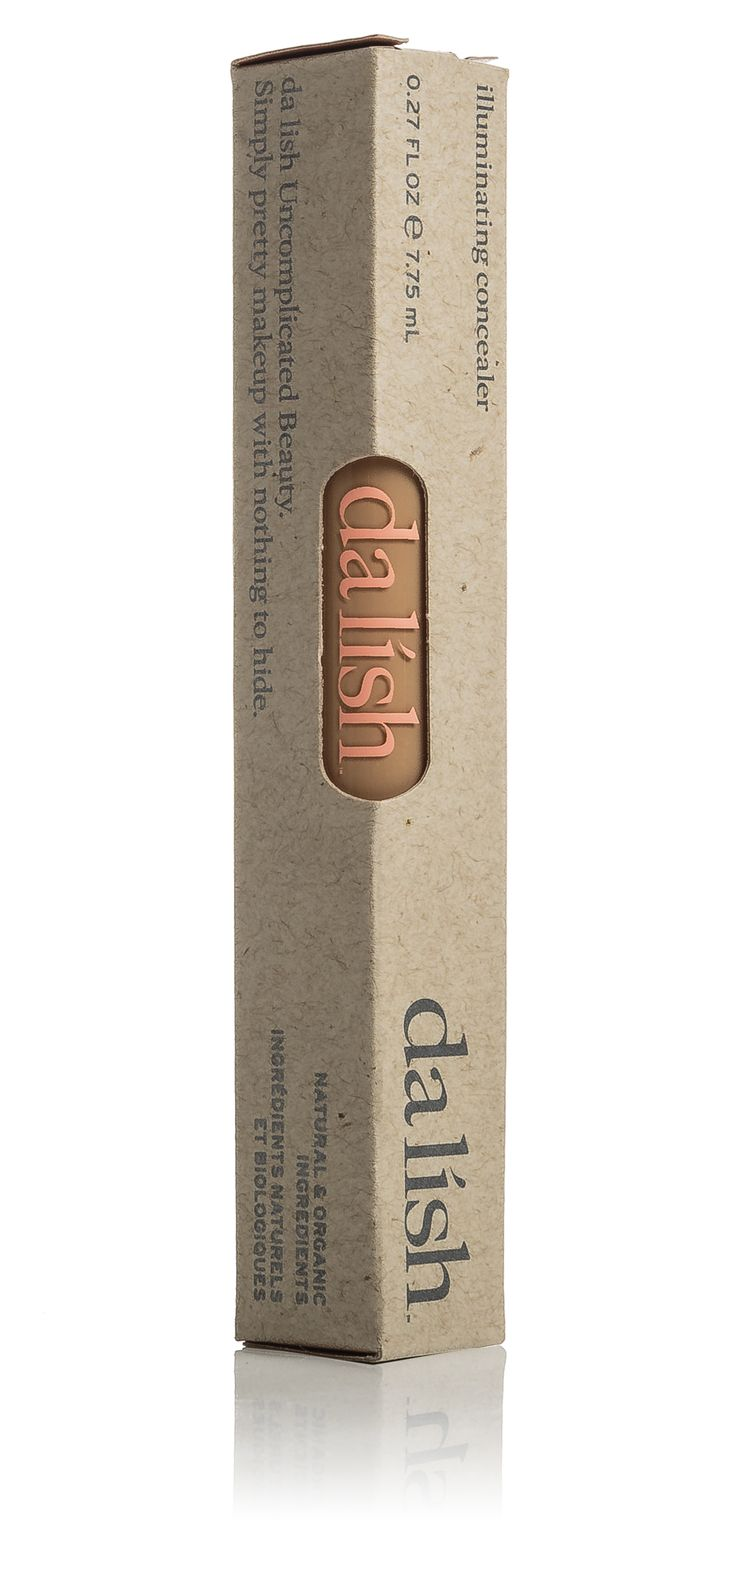 Brightening illuminators instantly wake-up under eye shadows, lift eyebrow arches and highlight cupid's bows. A rich and creamy consistency allows for buildable coverage to minimize discolouration, while corrective pigments disguise blemishes. Shade CO3 - See more at: http://www.dalishcosmetics.com/product/illumination-concealer-75-natural#sthash.keL0IZaK.dpuf